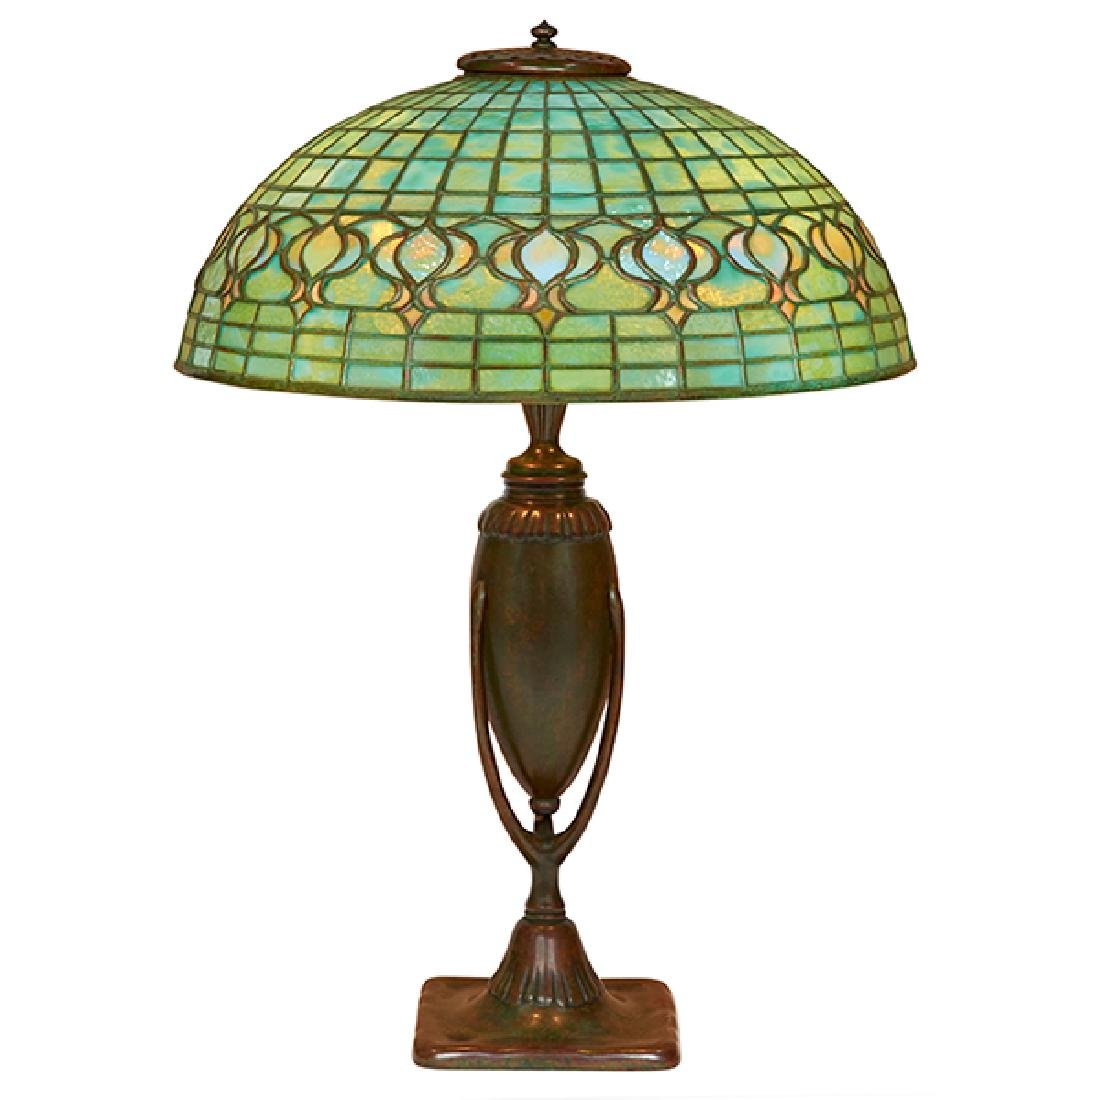 Tiffany Studios Pomegranate table lamp: shade, #1457 on